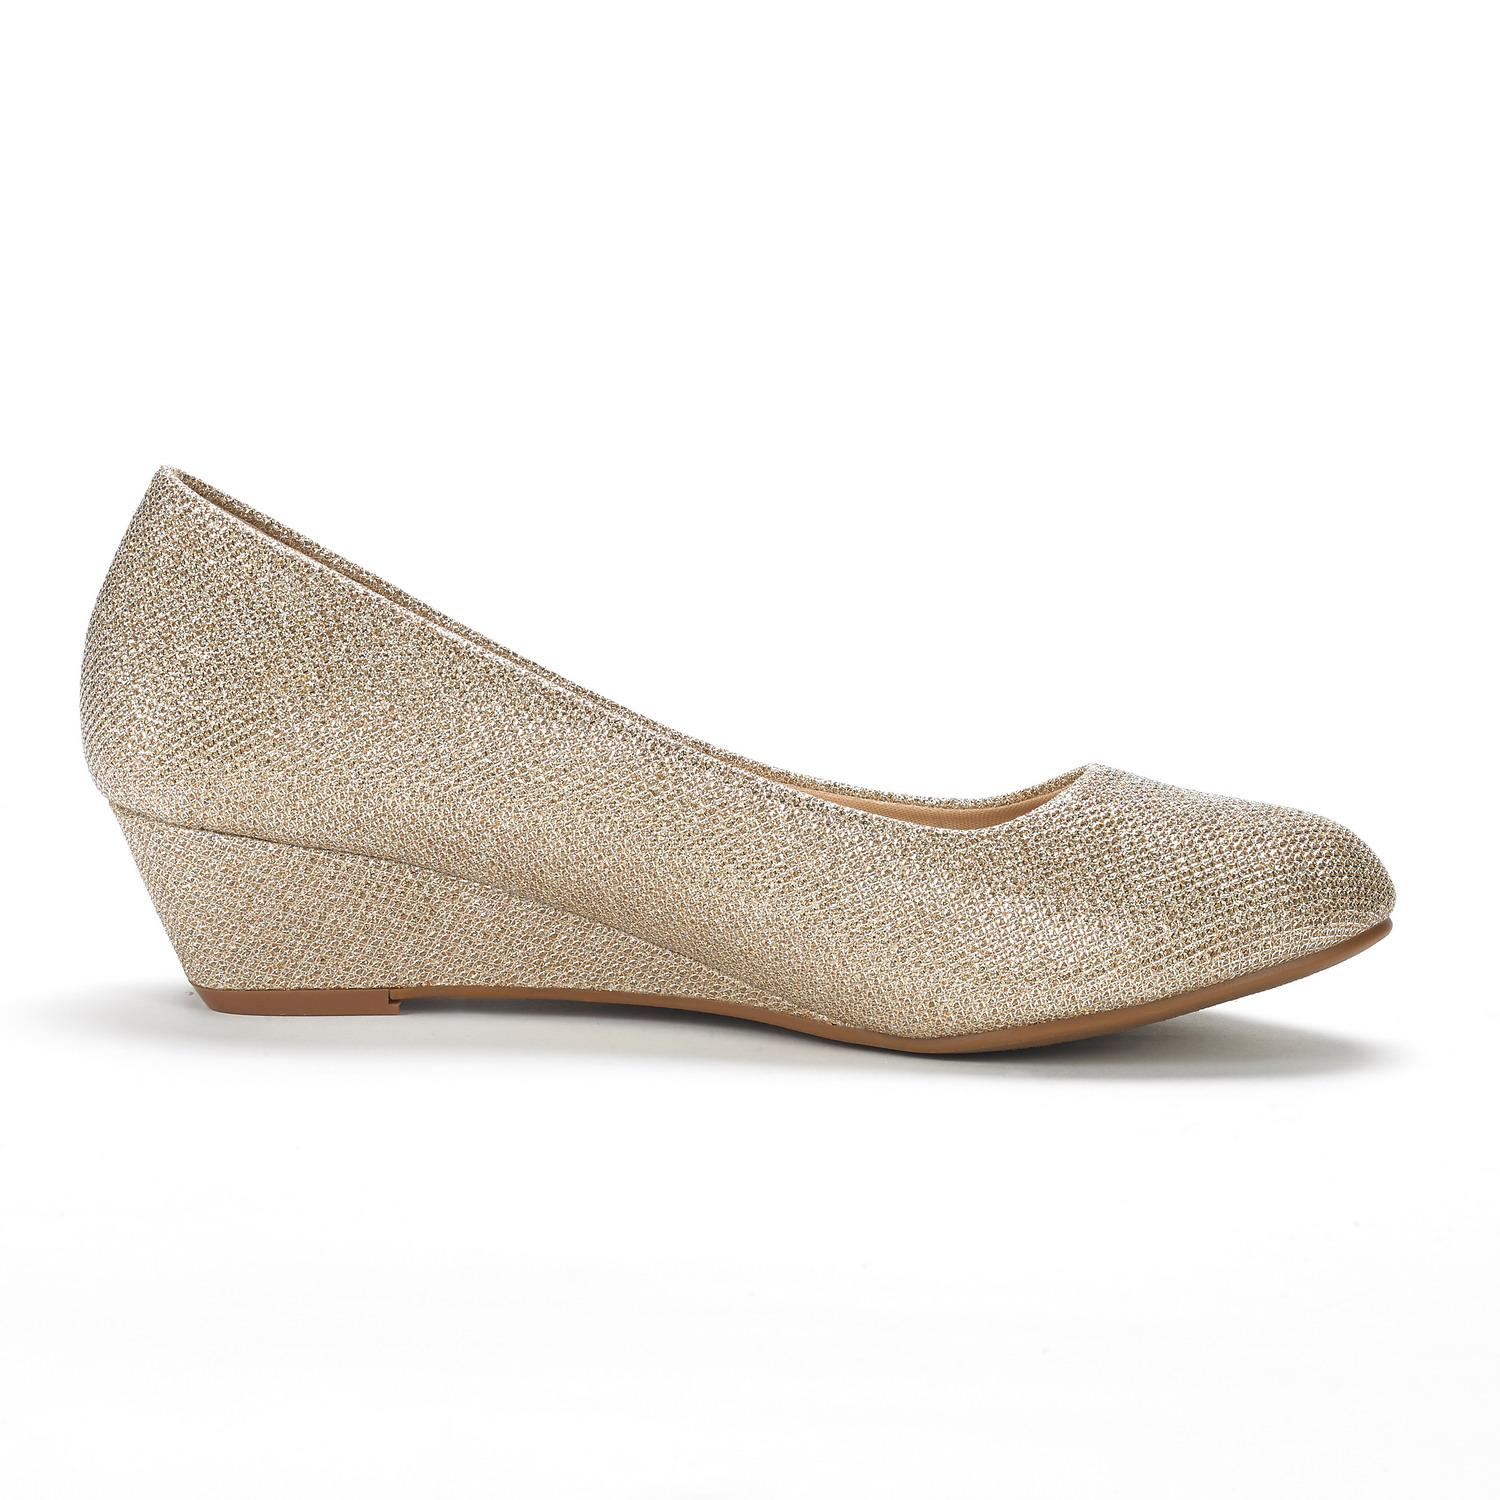 DREAM-PAIRS-Women-039-s-Mid-Wedge-Heel-Shoes-Slip-On-Comfort-Dress-Shoes-Suede-PU thumbnail 21